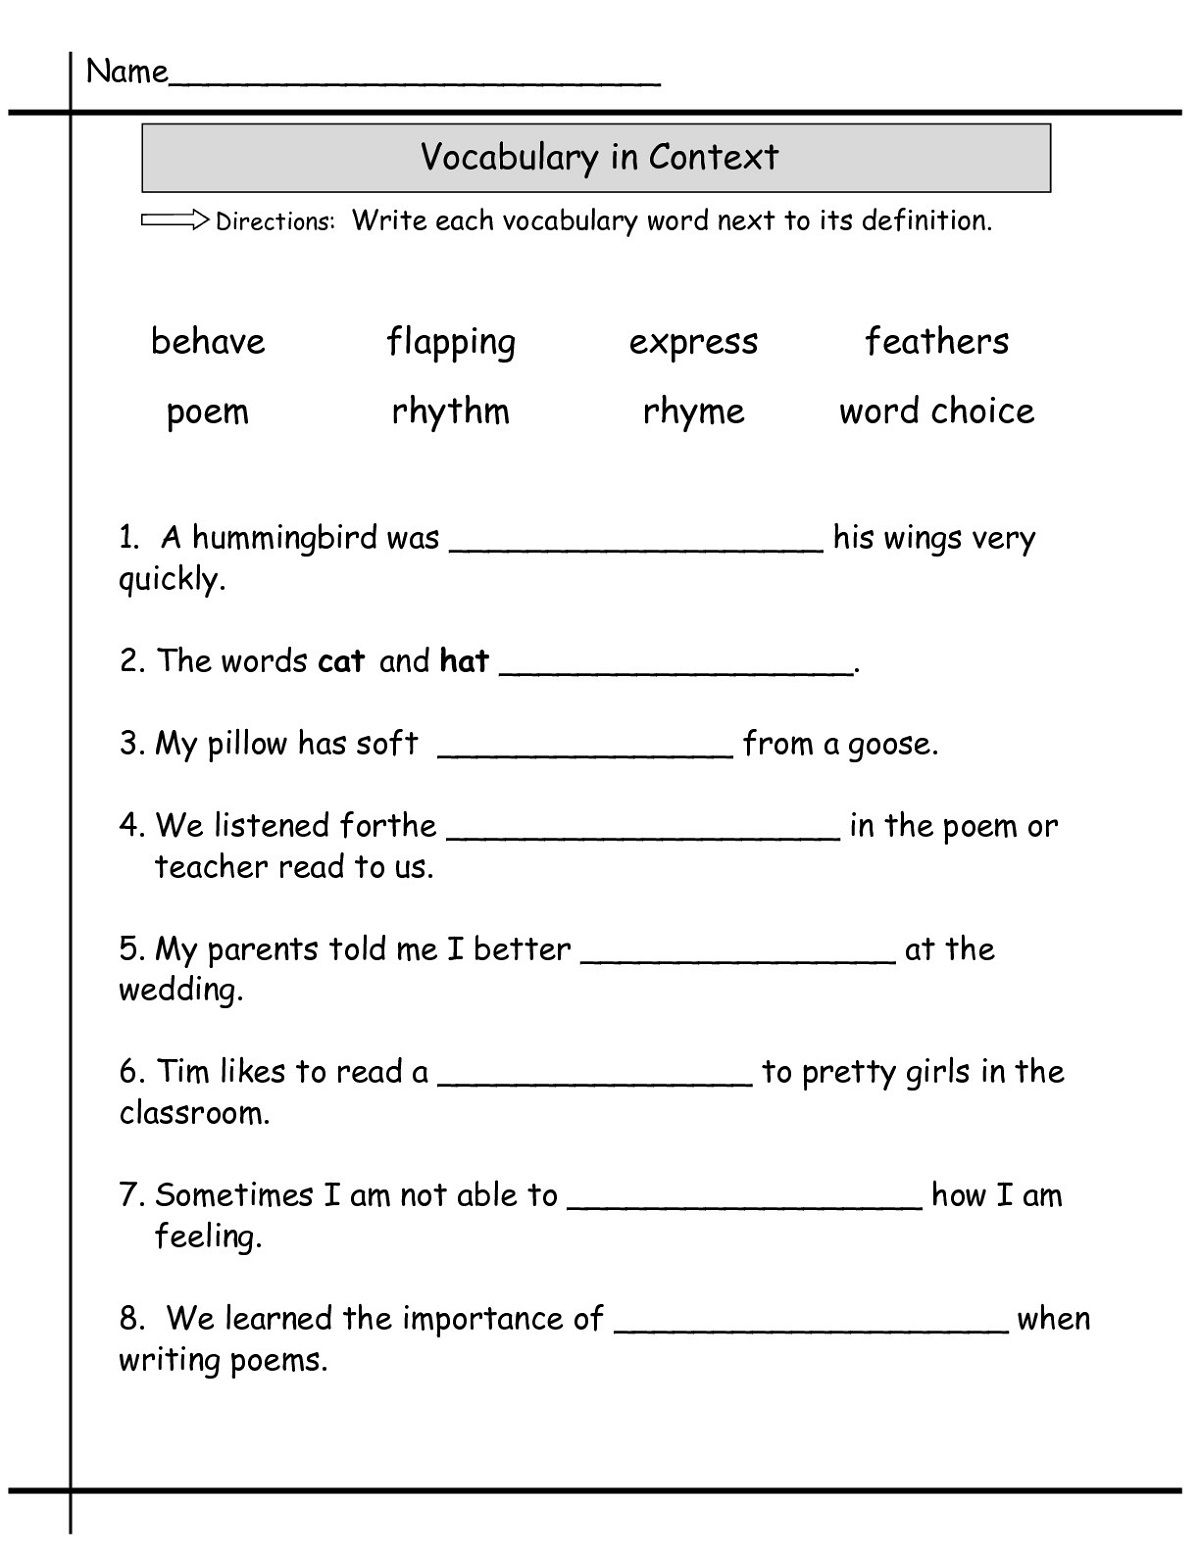 Language Worksheets English Grade 1 4 With Images 2nd Grade